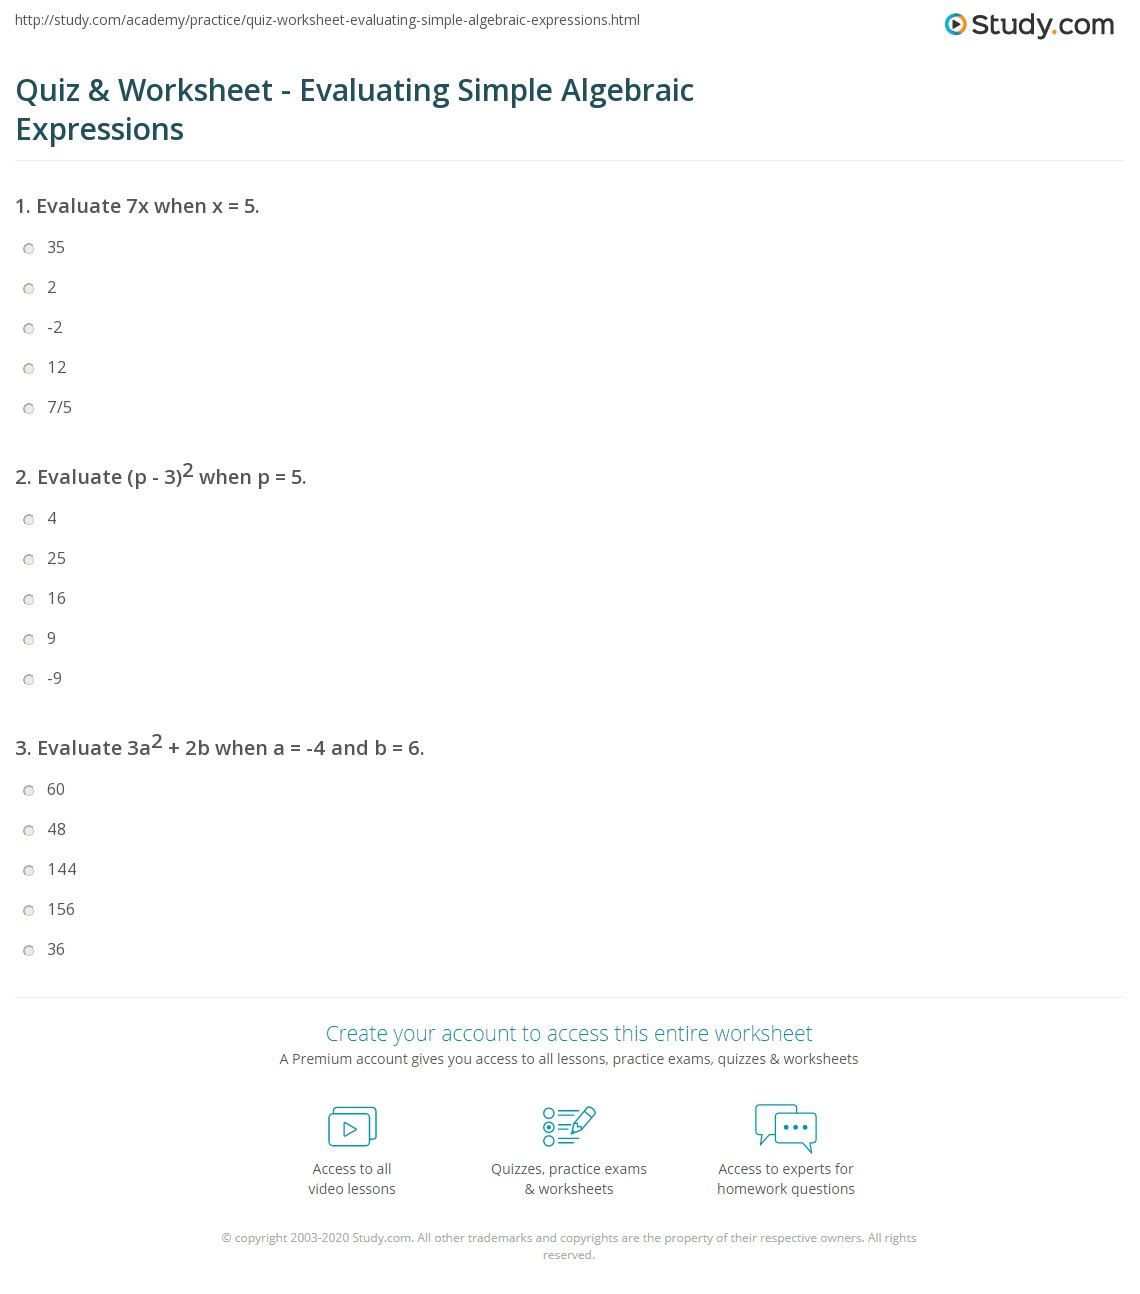 worksheet Evaluating Algebraic Expressions Worksheets quiz worksheet evaluating simple algebraic expressions study com print worksheet